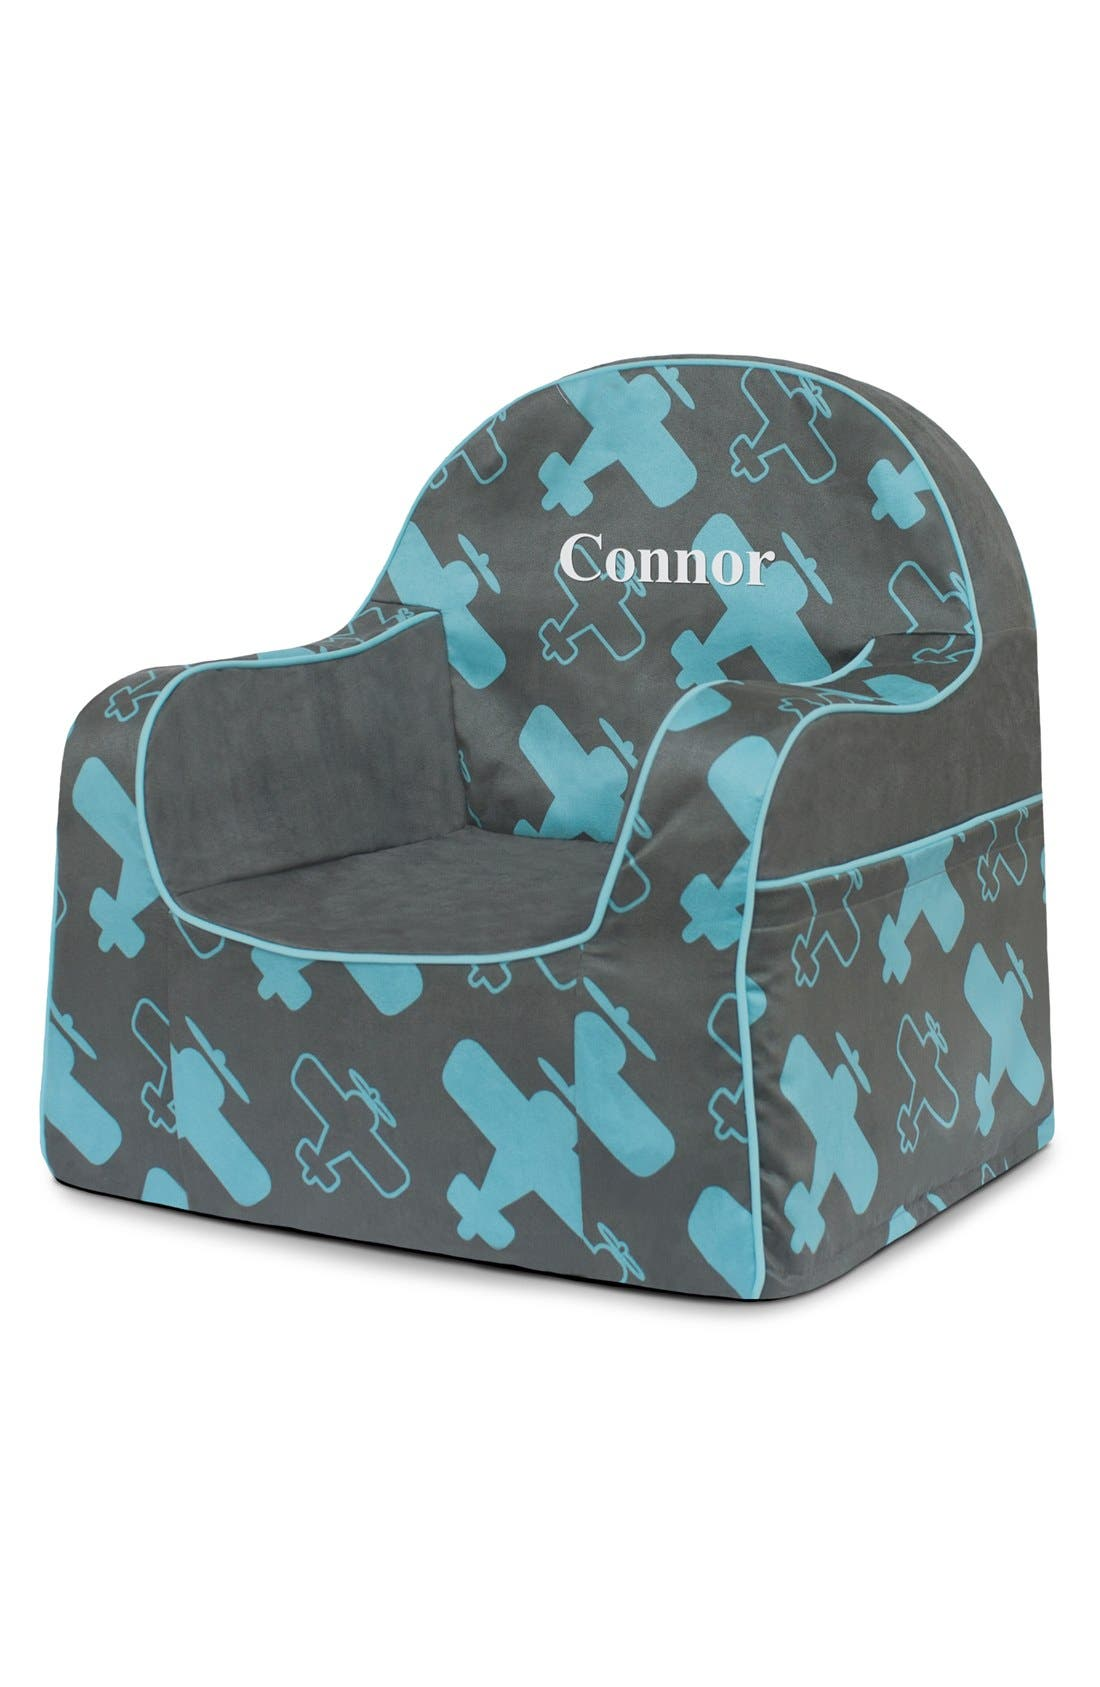 'Personalized Little Reader' Chair,                         Main,                         color, 400